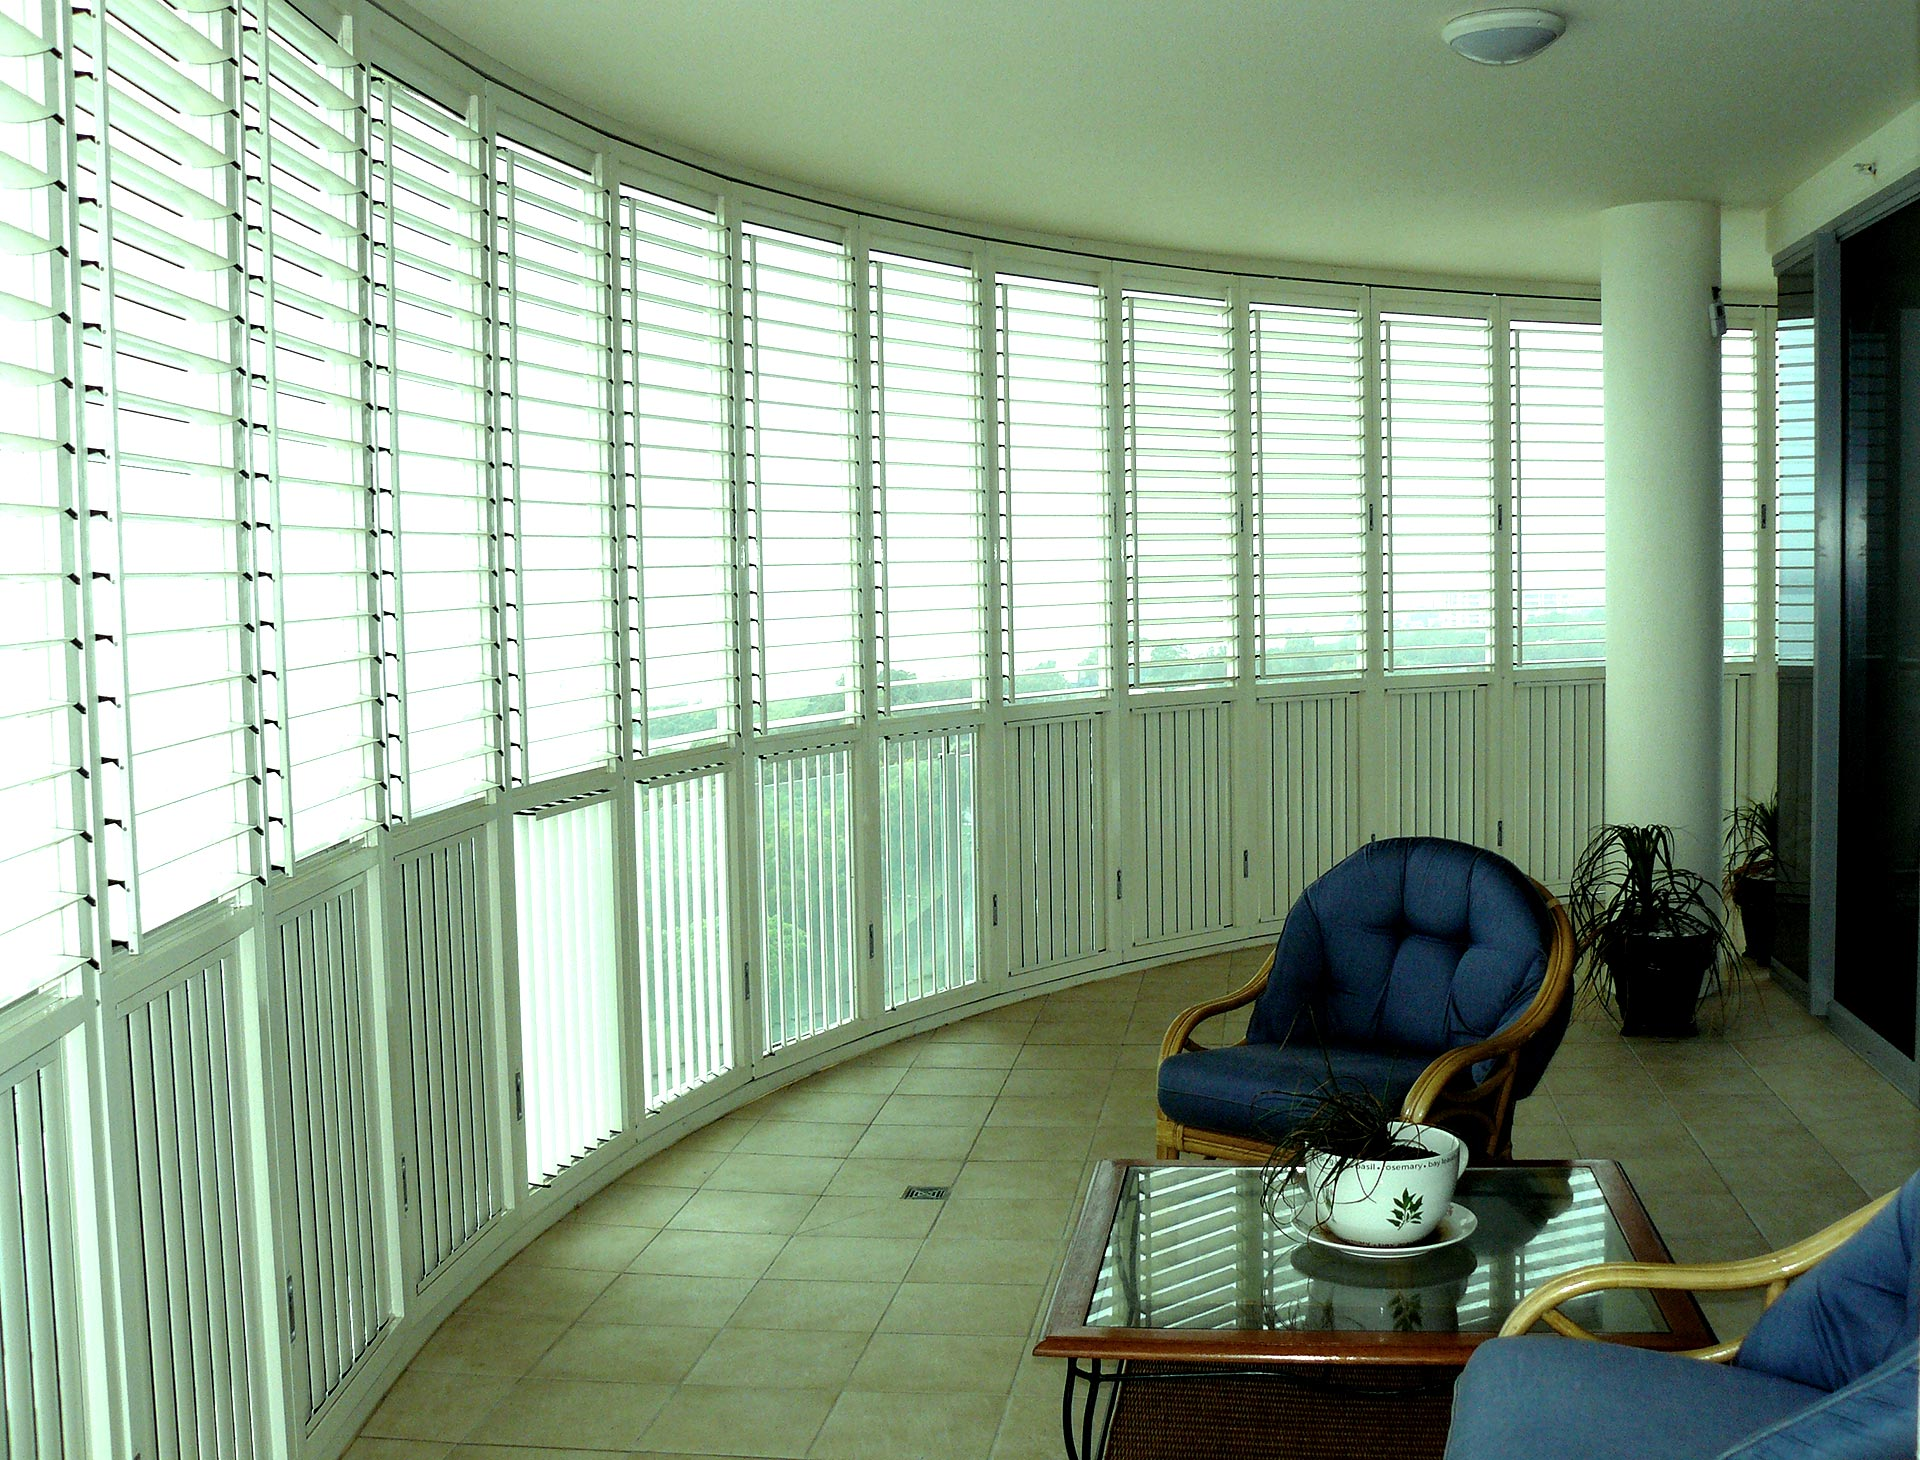 White outdoor shutters creating an outside room across a balcony